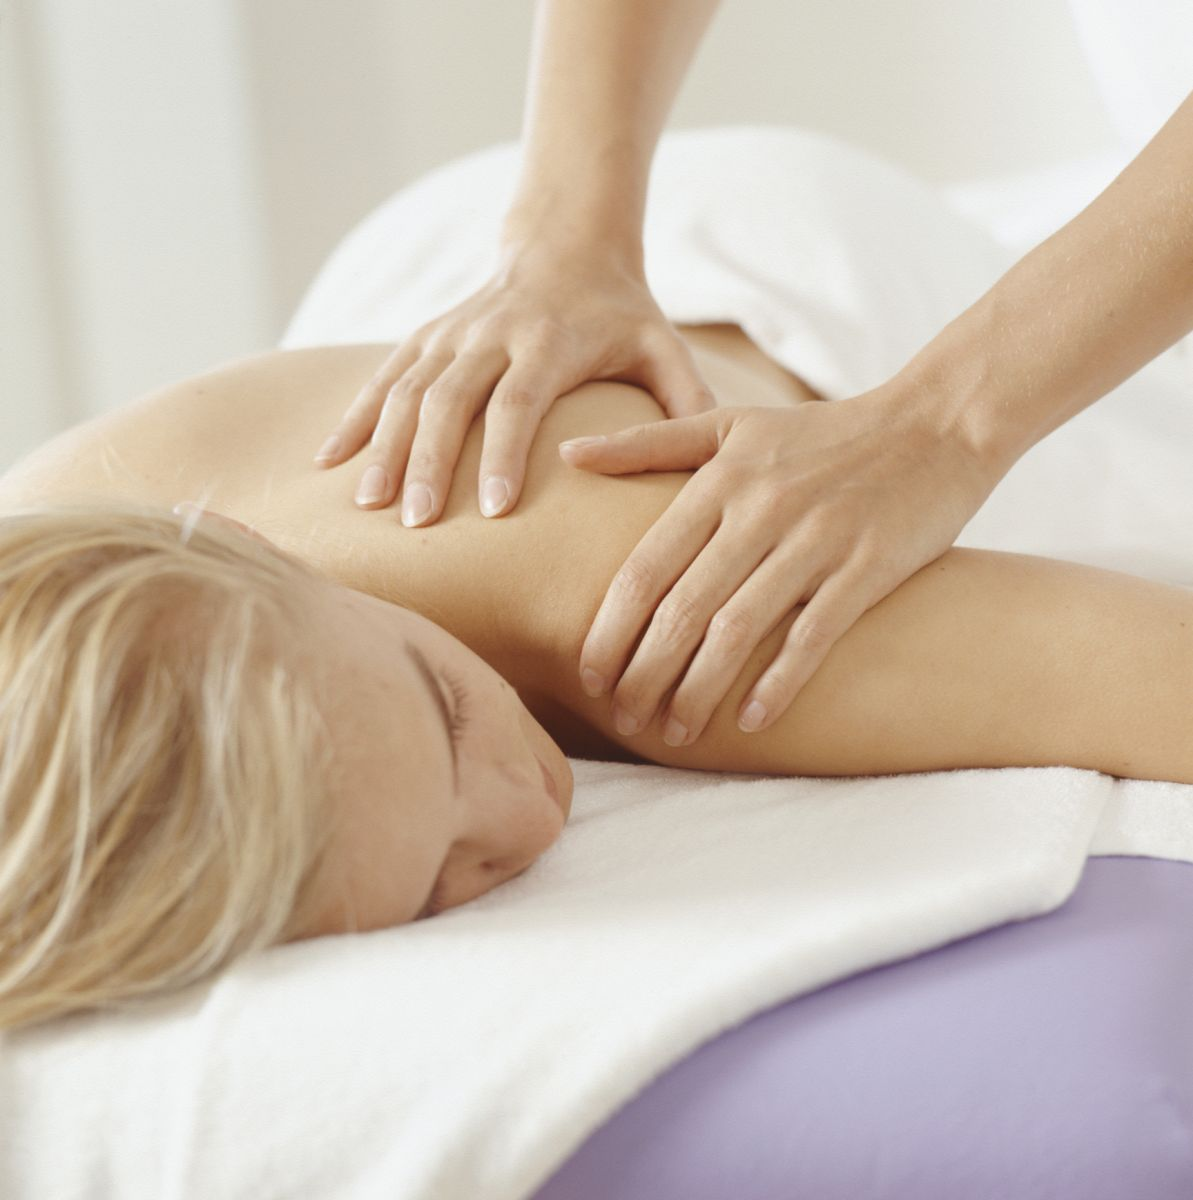 massage-away-winter-blues-wellness-news